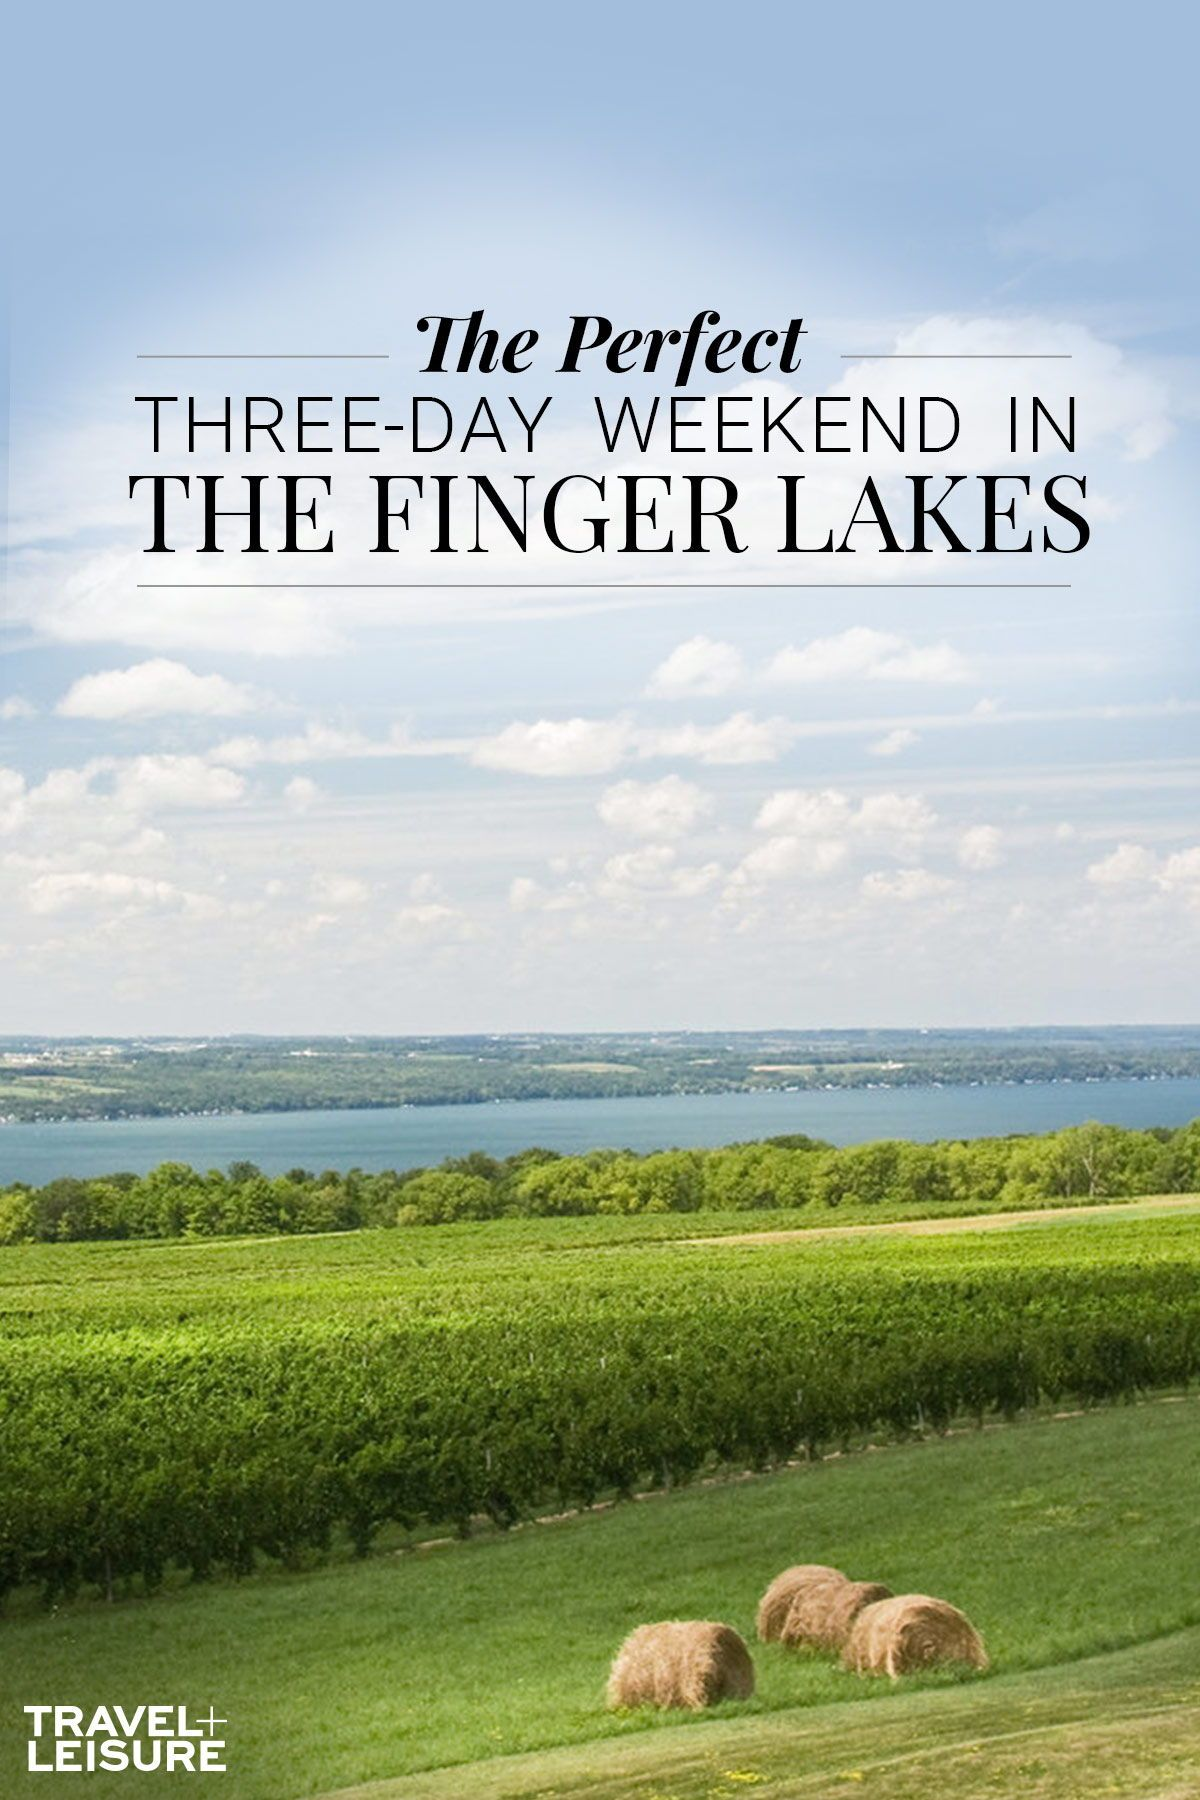 Three Days in the New York's Finger Lakes Region — What to